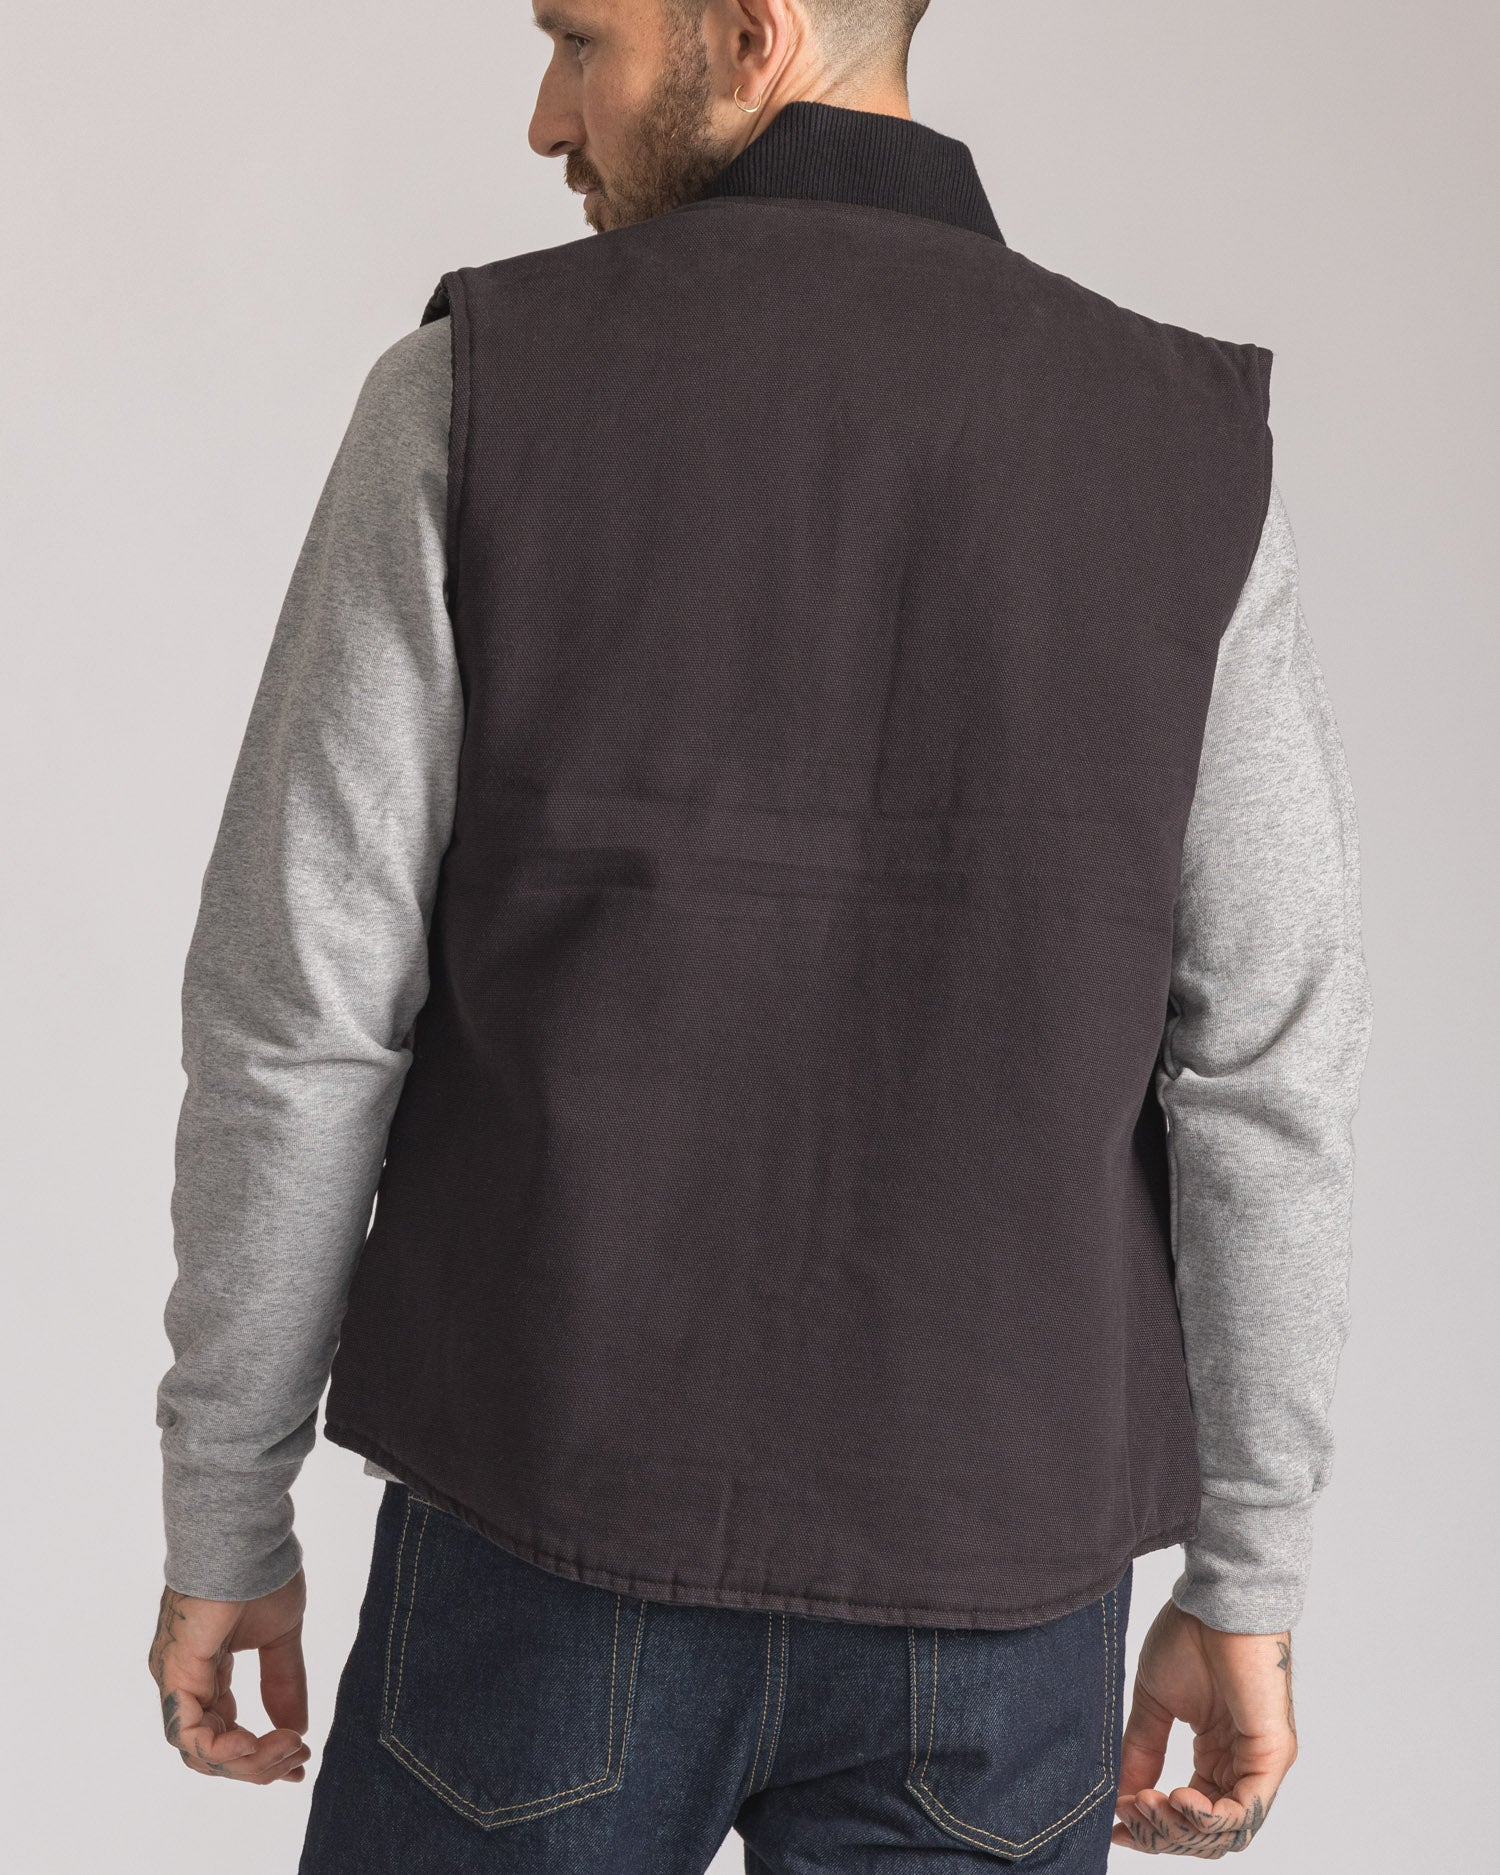 Mens Outerwear Lightweight Black Cotton Body warmer